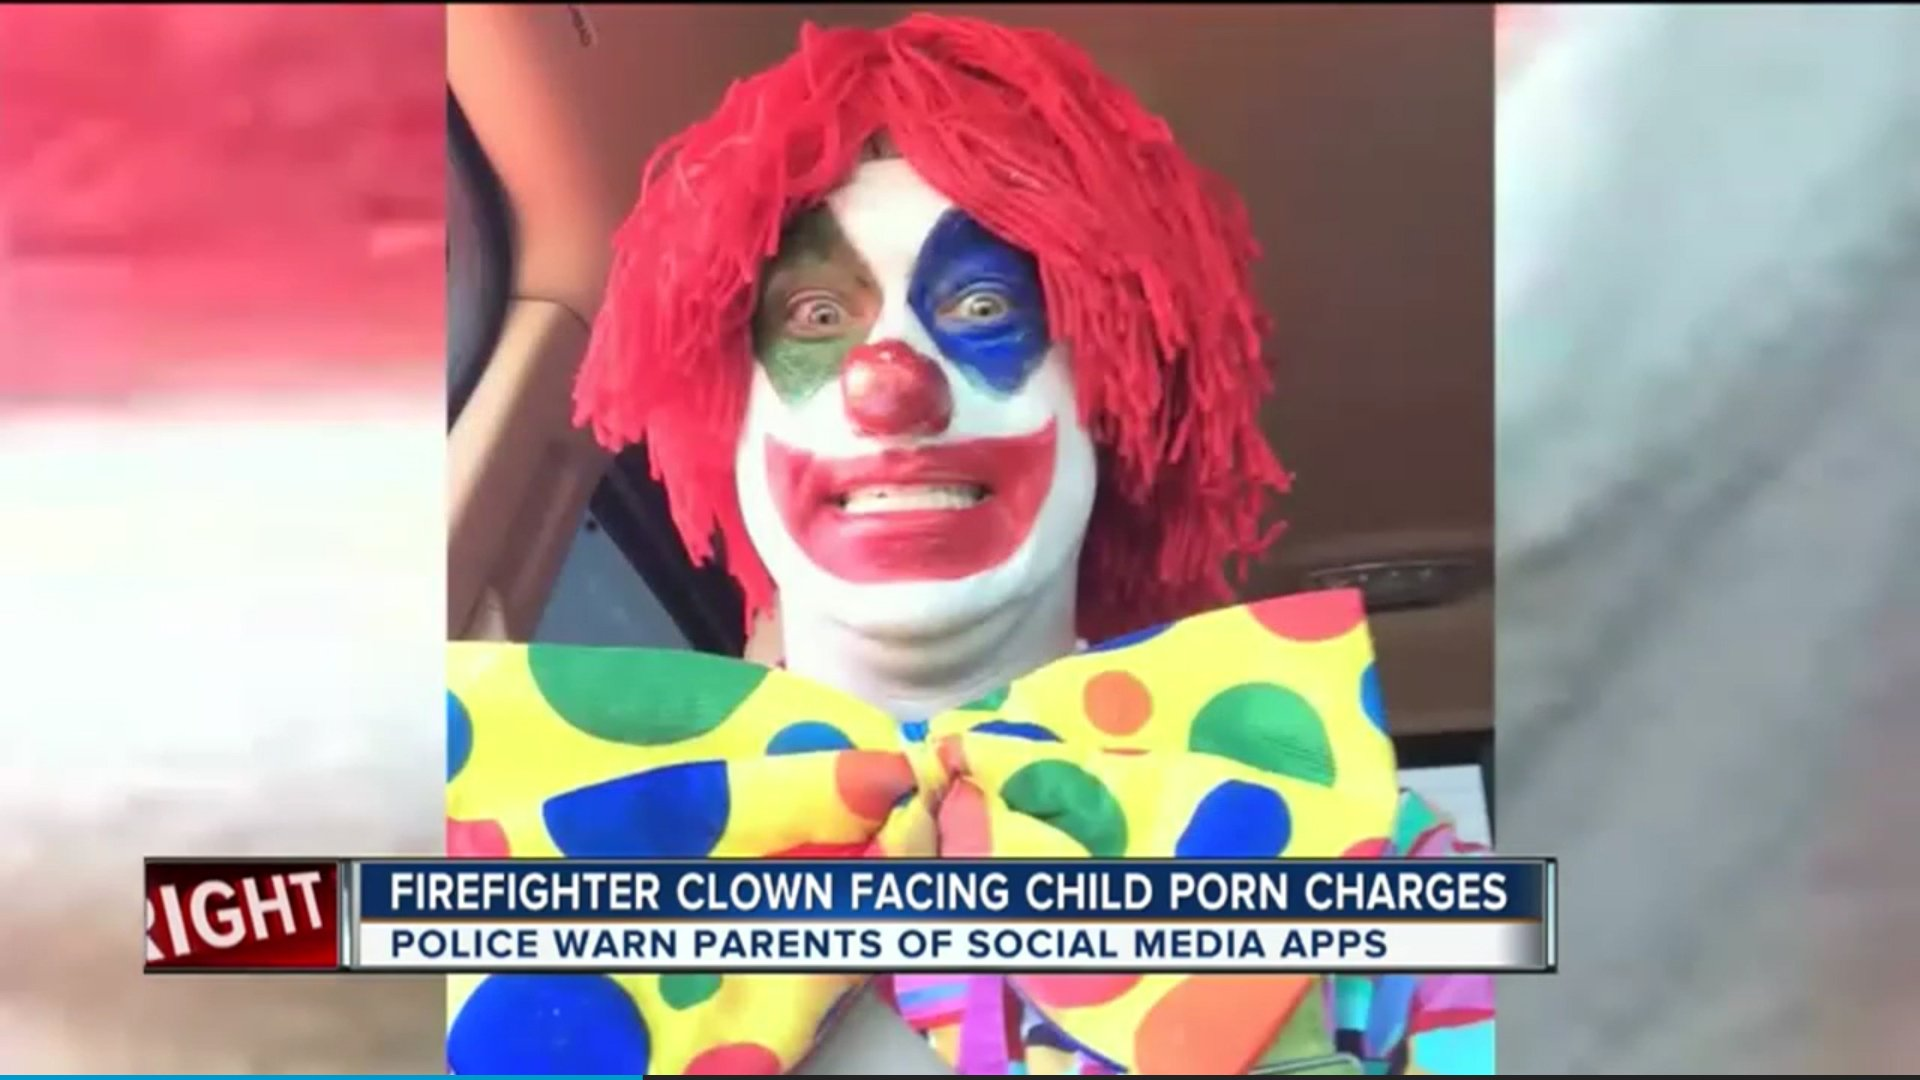 """nfrom Chris Murphy 01634 686 515nA firefighter CLOWN who taught kids fire safety has been arrested for allegedly sending images of child porn to a woman, and maybe having SEX WITH A DOG.nPolice in Oklahoma say this is a serious case.nTulsa World reports the fire officer worked for the service in the town of Muskogee.nZackery Blaine Perry also dressed up as a clown to become a member of the popular Muskogee Fire Department Clown Society clown.nTulsa World says they have reports he resigned from his position with the department on January 11.nIt said he is now facing a string of horrific charges, including that he had sex with or facilitated sex with a canine.nProsecutors charged the 30-year-old Muskogee County District Court with aggravated possession of child pornography; publishing, distributing or participating in obscene material; child sexual exploitation; and crimes against nature.nIt is claimed his world collapsed when he apparently sent sick images of child abuse to a woman he met online. She then called police.nTulsa World said according to a probable cause affidavit, his mobile is said to have contained ¿1,378 images and videos relating or depicting child pornography¿.nIt goes on to claim: """"Additionally, there were photos, videos and texts discovered that the suspect Zack Perry had been involved in or facilitated the recordings of sexual acts between an adult female and a dog¿.nA woman contacted the Muskogee County Sheriff¿s Office on January 5, when Perry allegedly asked her on social platform KIK for photographs of her child, who is just eight.nPerry was arrested that day on allegations he had sent messages and videos of child pornography.nHis fire department boss Lincoln Anderson told KFOR: """"He had things that nobody should have - children, is the bottom line.""""nHe is scheduled to reappear in court February 2 for what is called a sounding docket, where a judge and legal teams consider whether to continue to trial and if so, when.nendsn"""